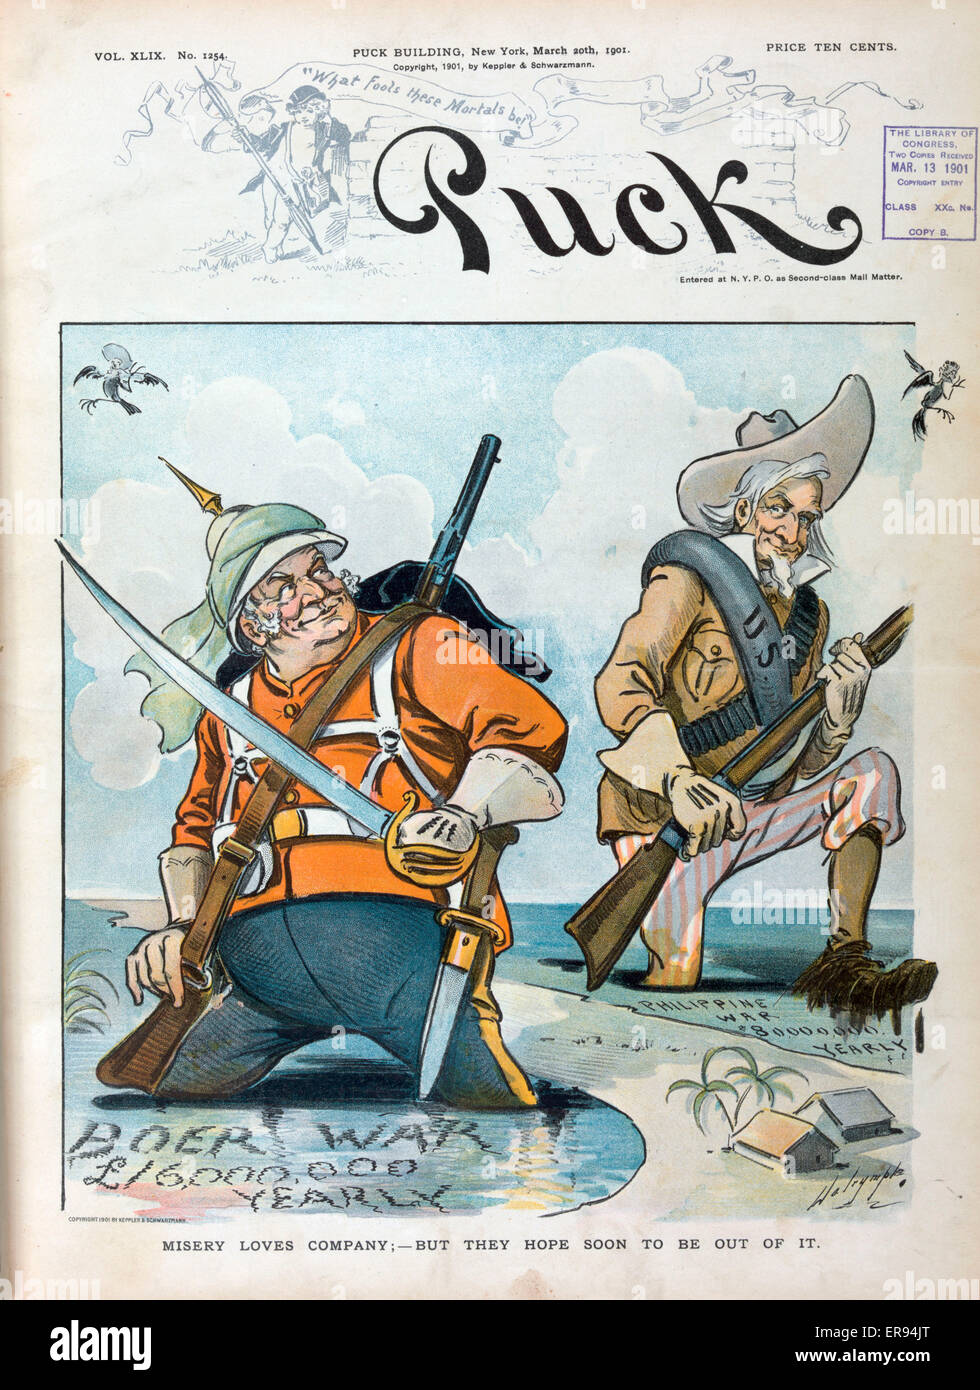 Misery loves company; - but they hope soon to be out of it. Illustration shows John Bull standing up to his knees - Stock Image